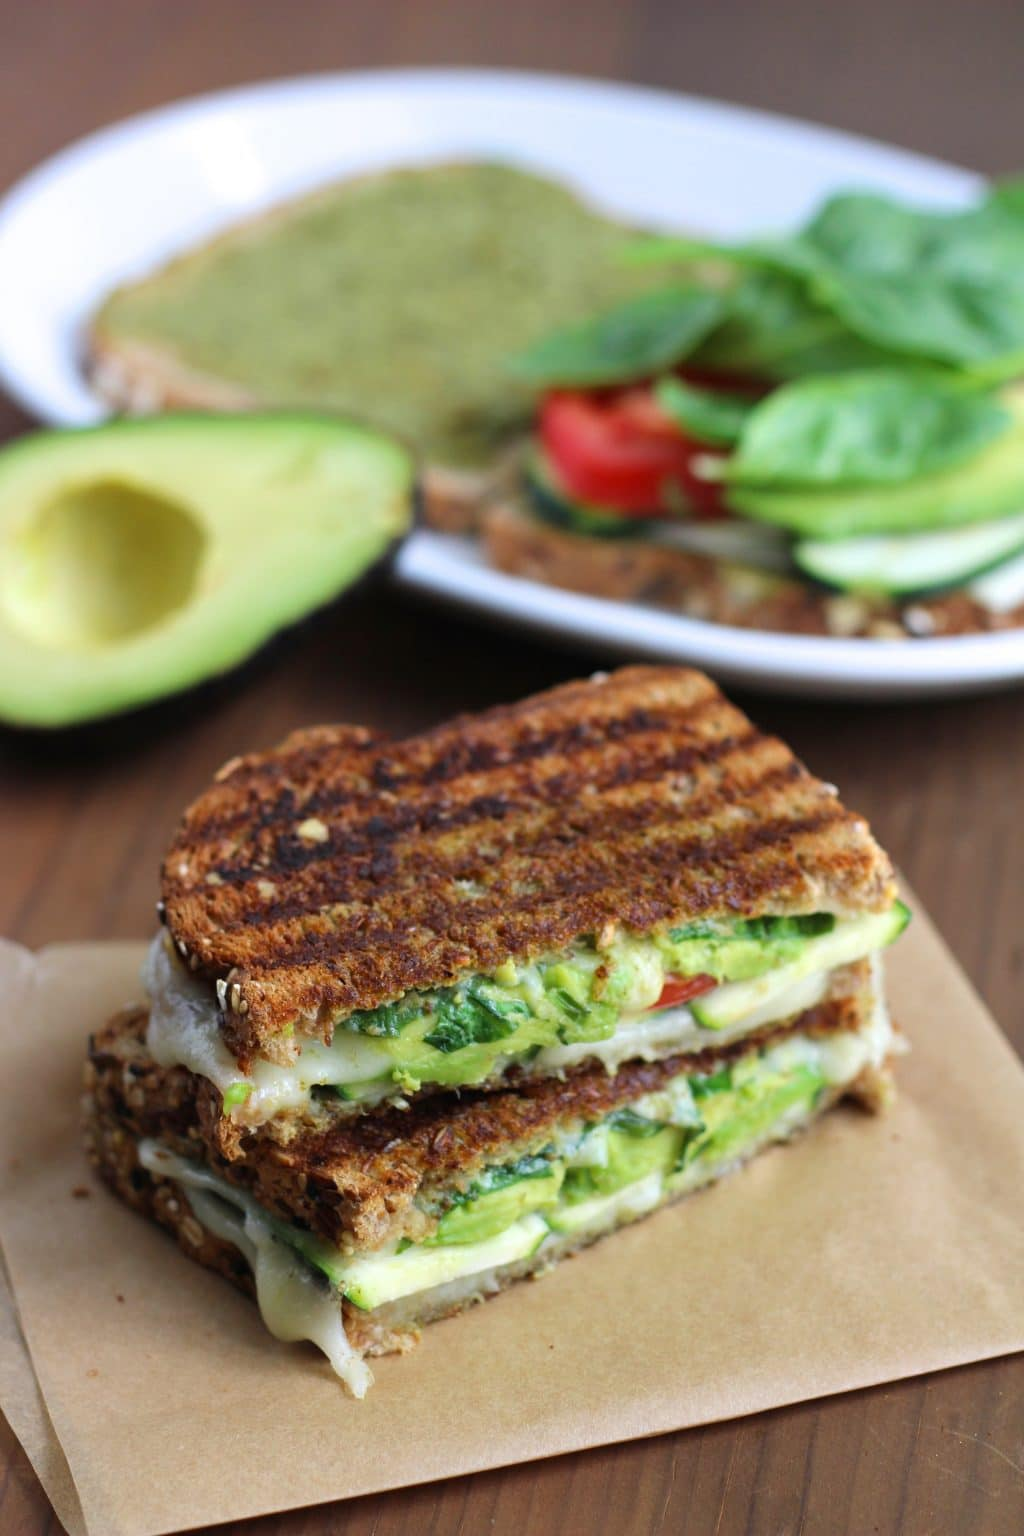 A vegan sandwich cut in half and stacked on top of each other on top of a piece of parchment paper next to a white plate and an avocado.